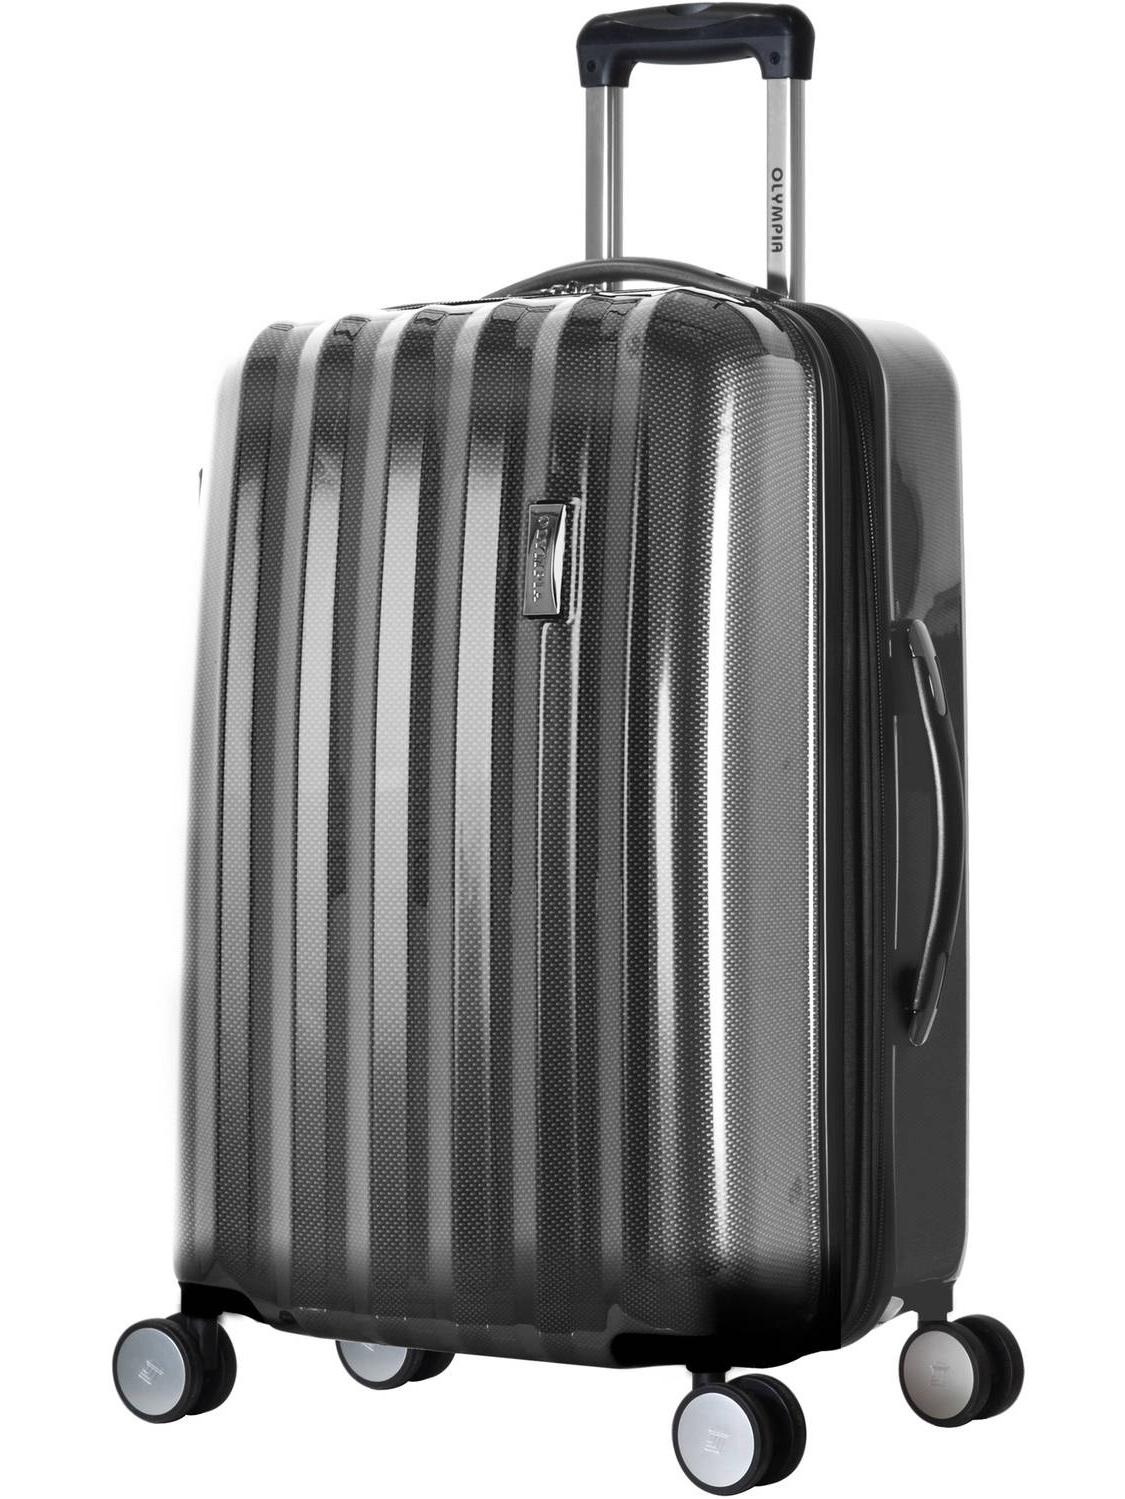 0cb917a90 Olympia Usa - Olympia Titan 3 Piece Expandable Luggage Polycarbonate  Hardcase Spinner Set - Walmart.com